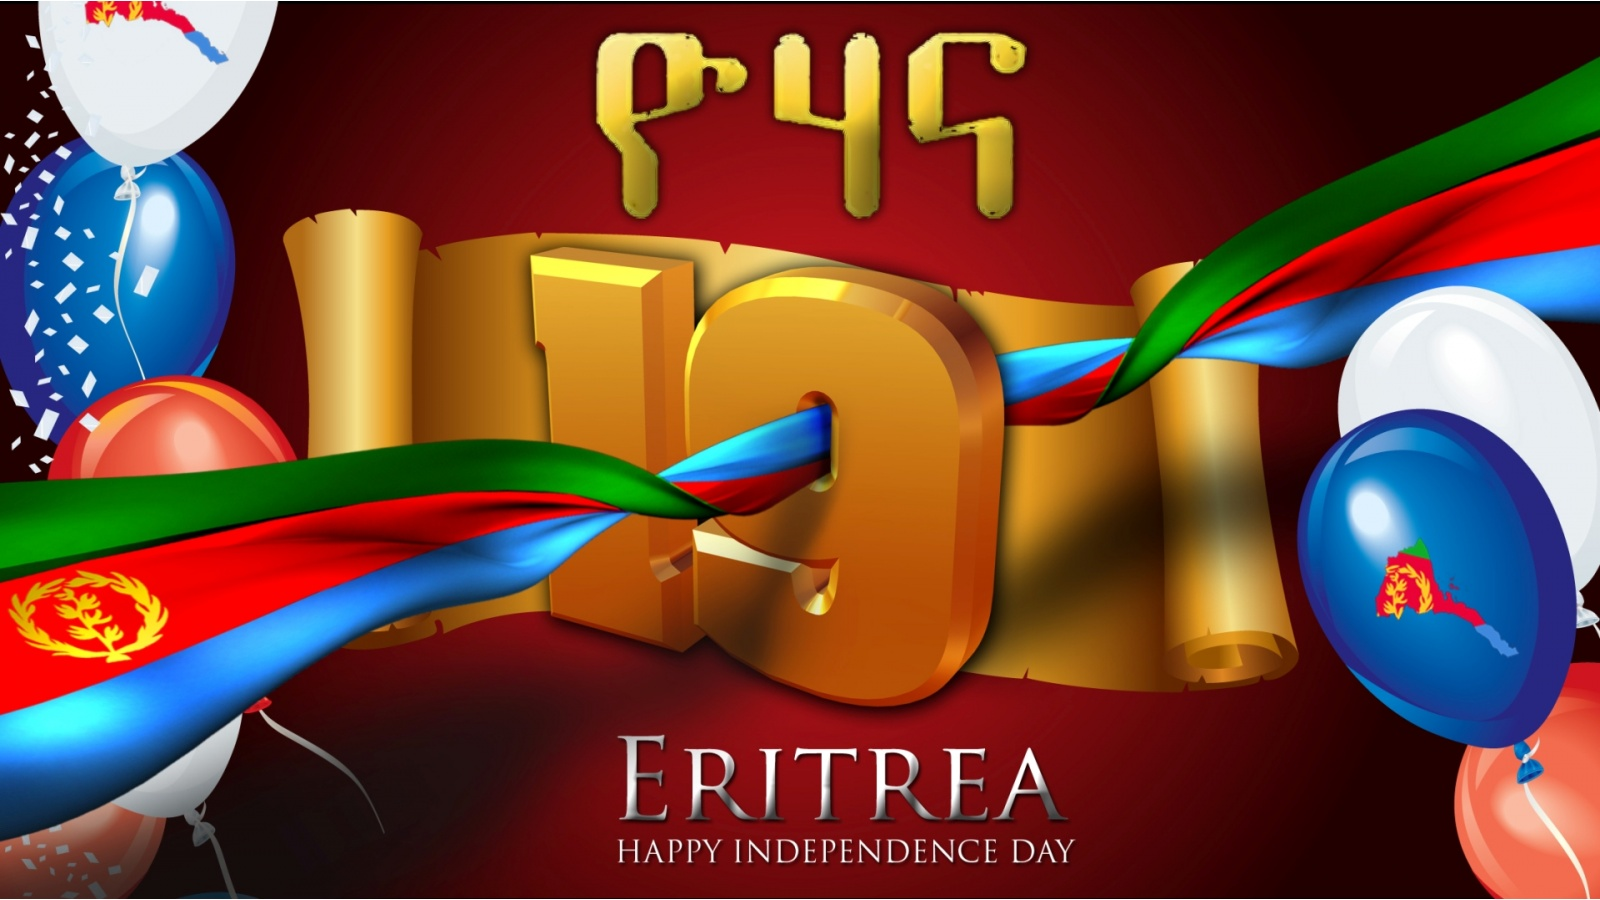 Eritrean Independence Day Wallpapers   1600x900   297098 1600x900